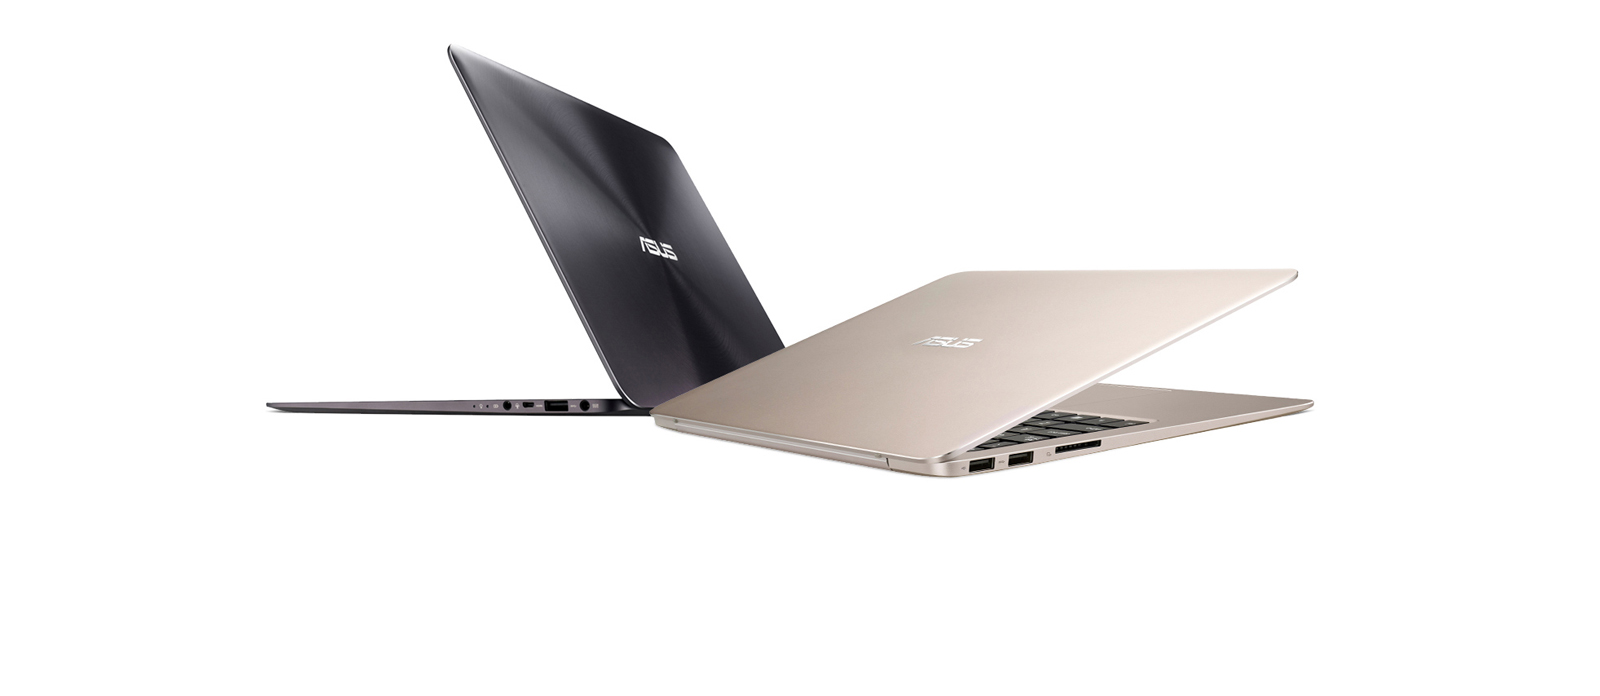 Asus Zenbook Ux305ua Laptops New Zealand Charger Wiring Diagram Fast Slim Beautiful